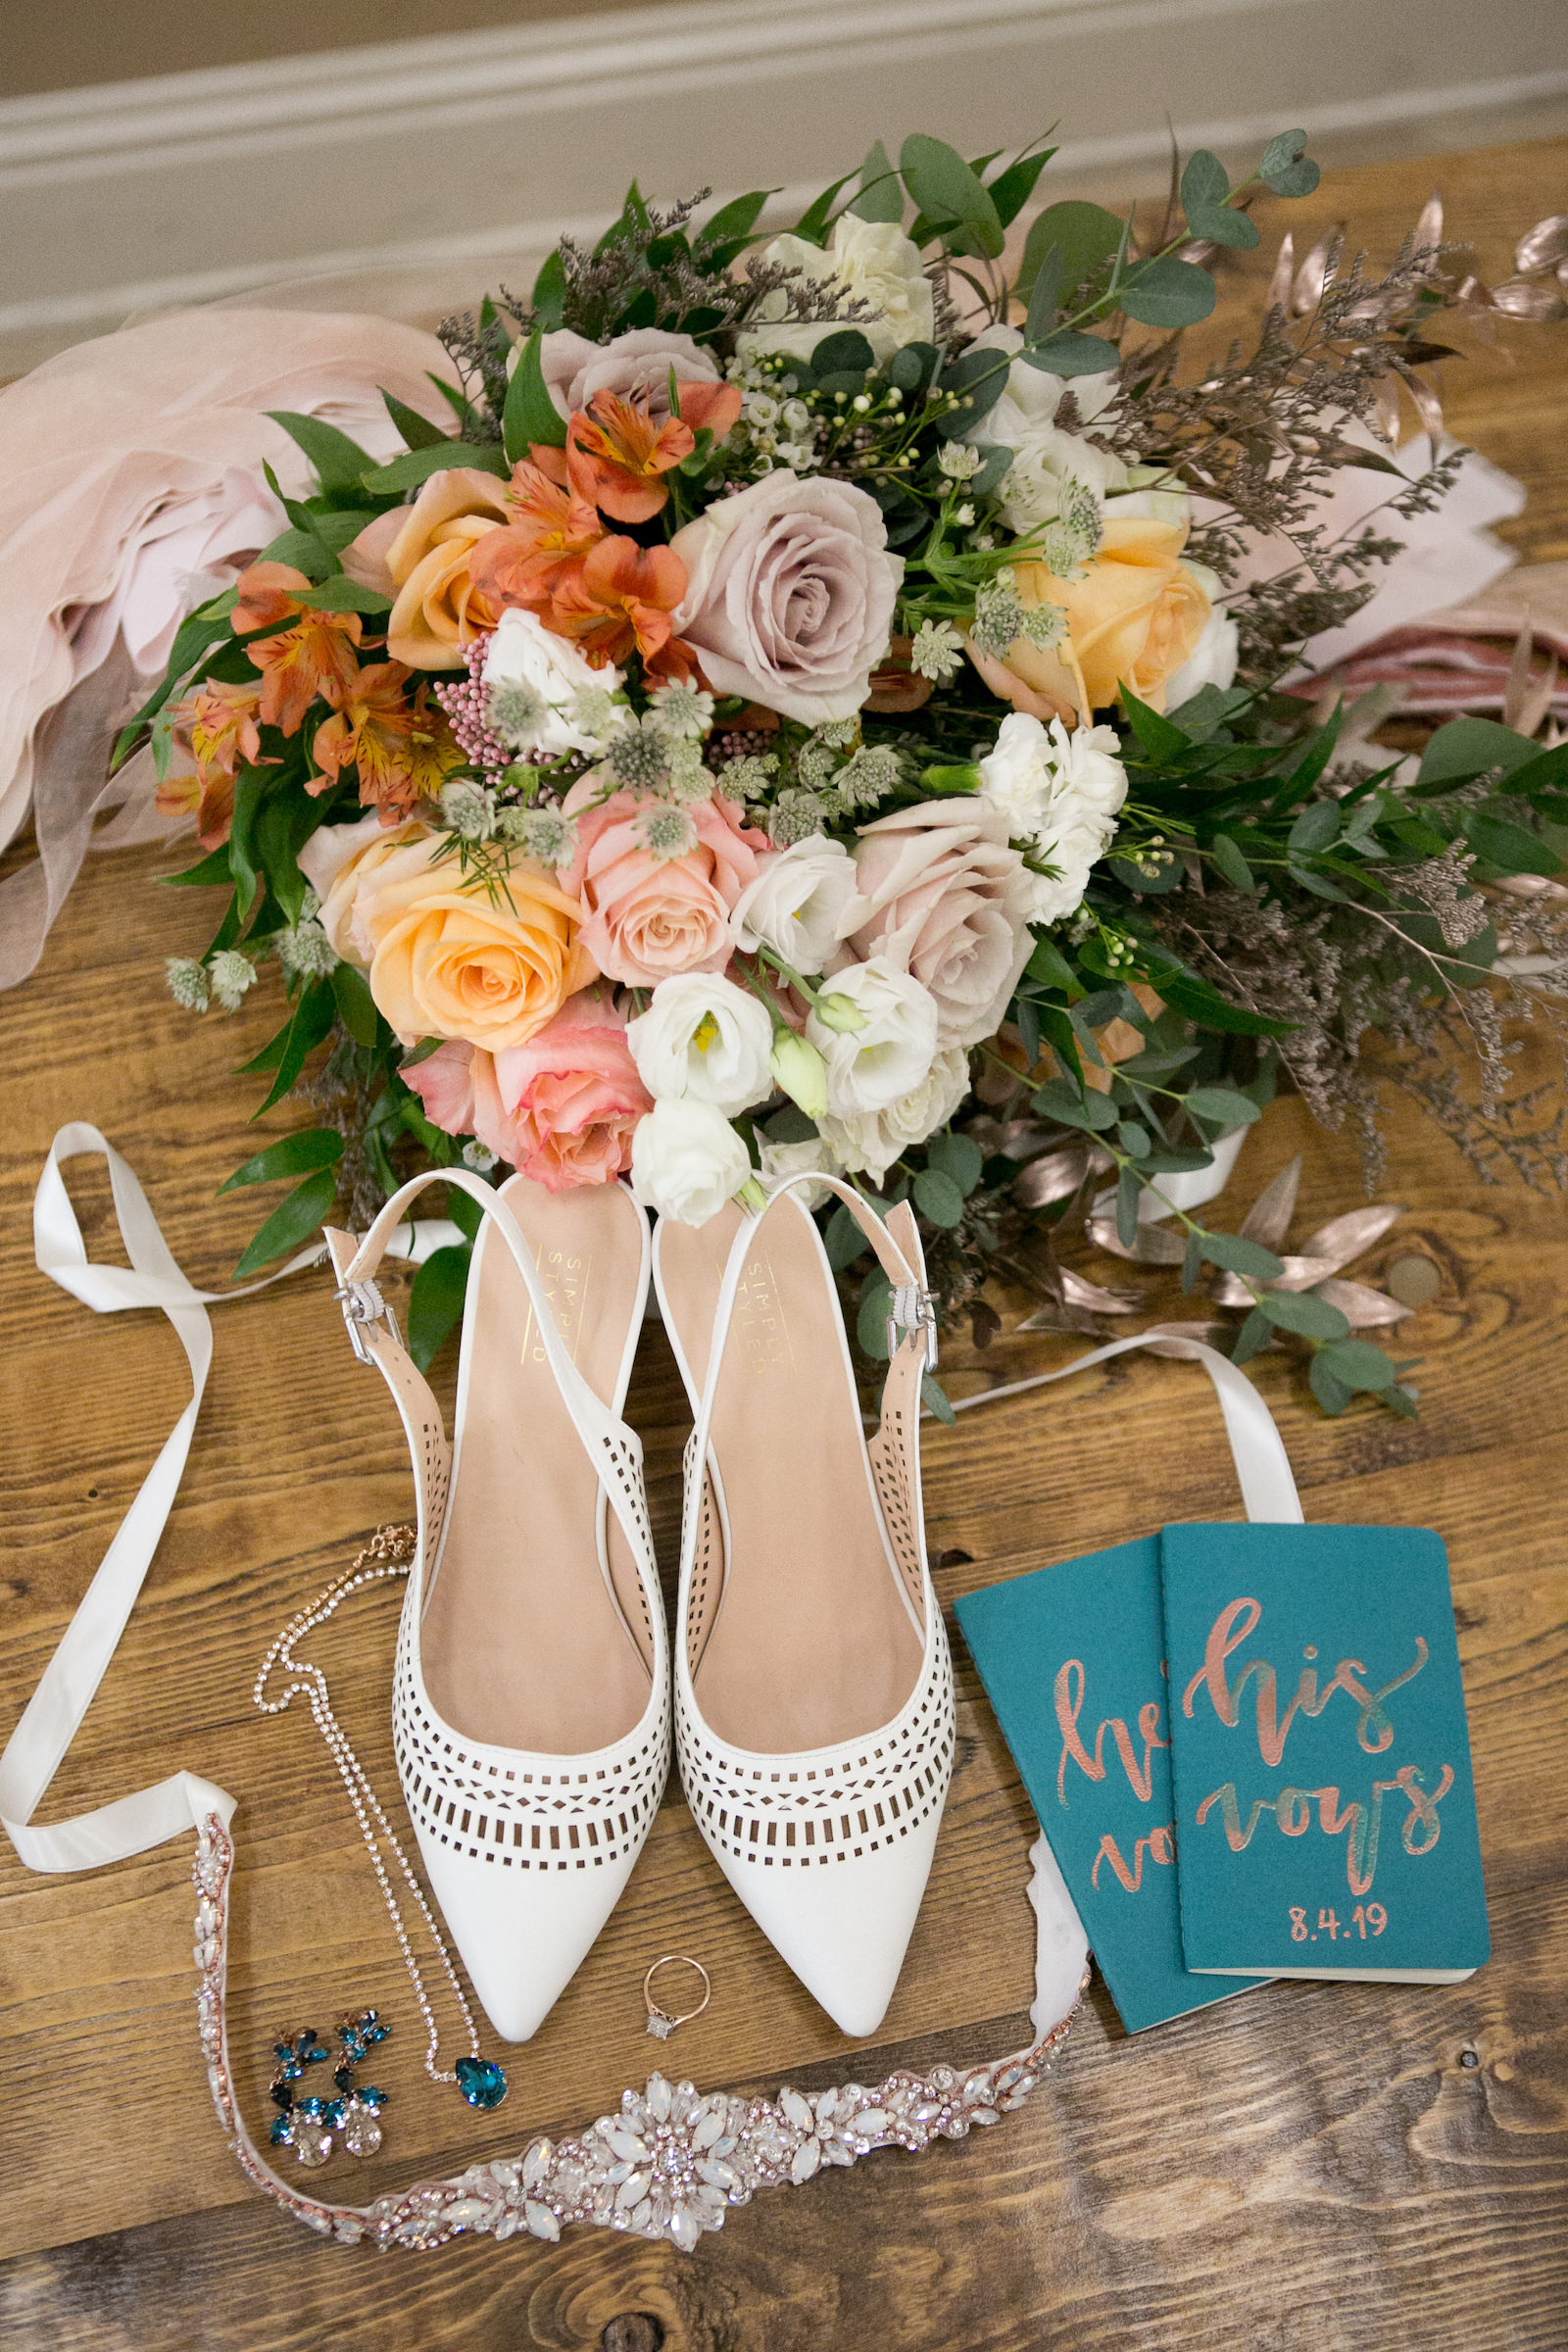 White Pointed Toe Heel Strap Wedding Shoes, Spring Colors Coral, Pink, Orange, Mauve Roses with Greenery Floral Bouquet, Green His and Hers Vows Books, Rhinestone Bridal belt | Wedding Photographer Carrie Wildes Photography